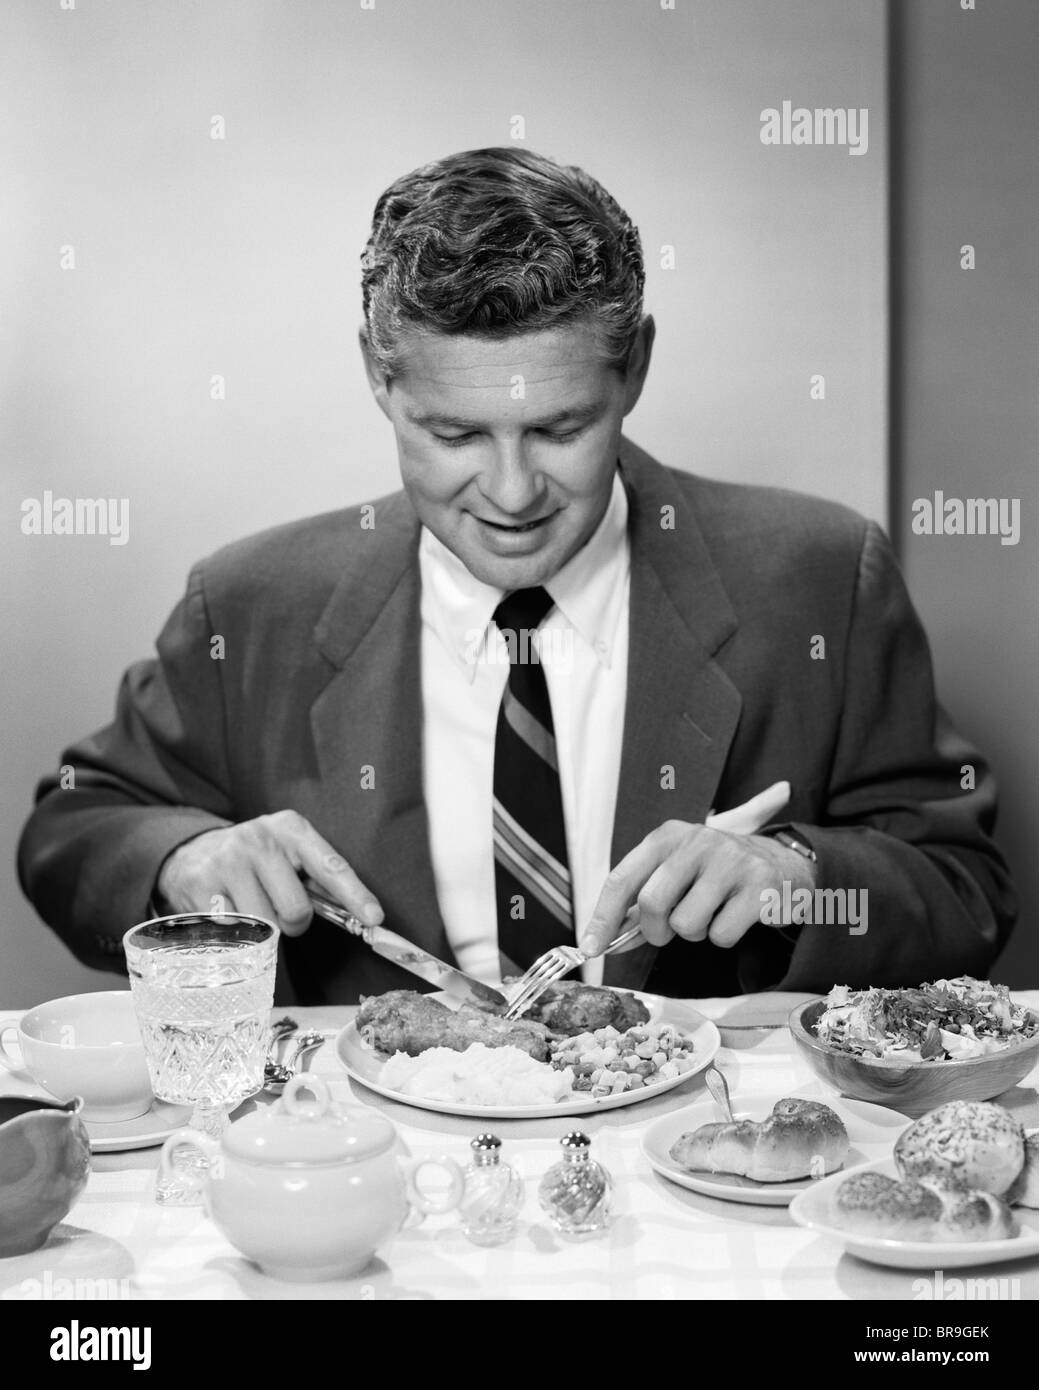 1950s smiling man in suit and tie sitting at table holding for Eating table